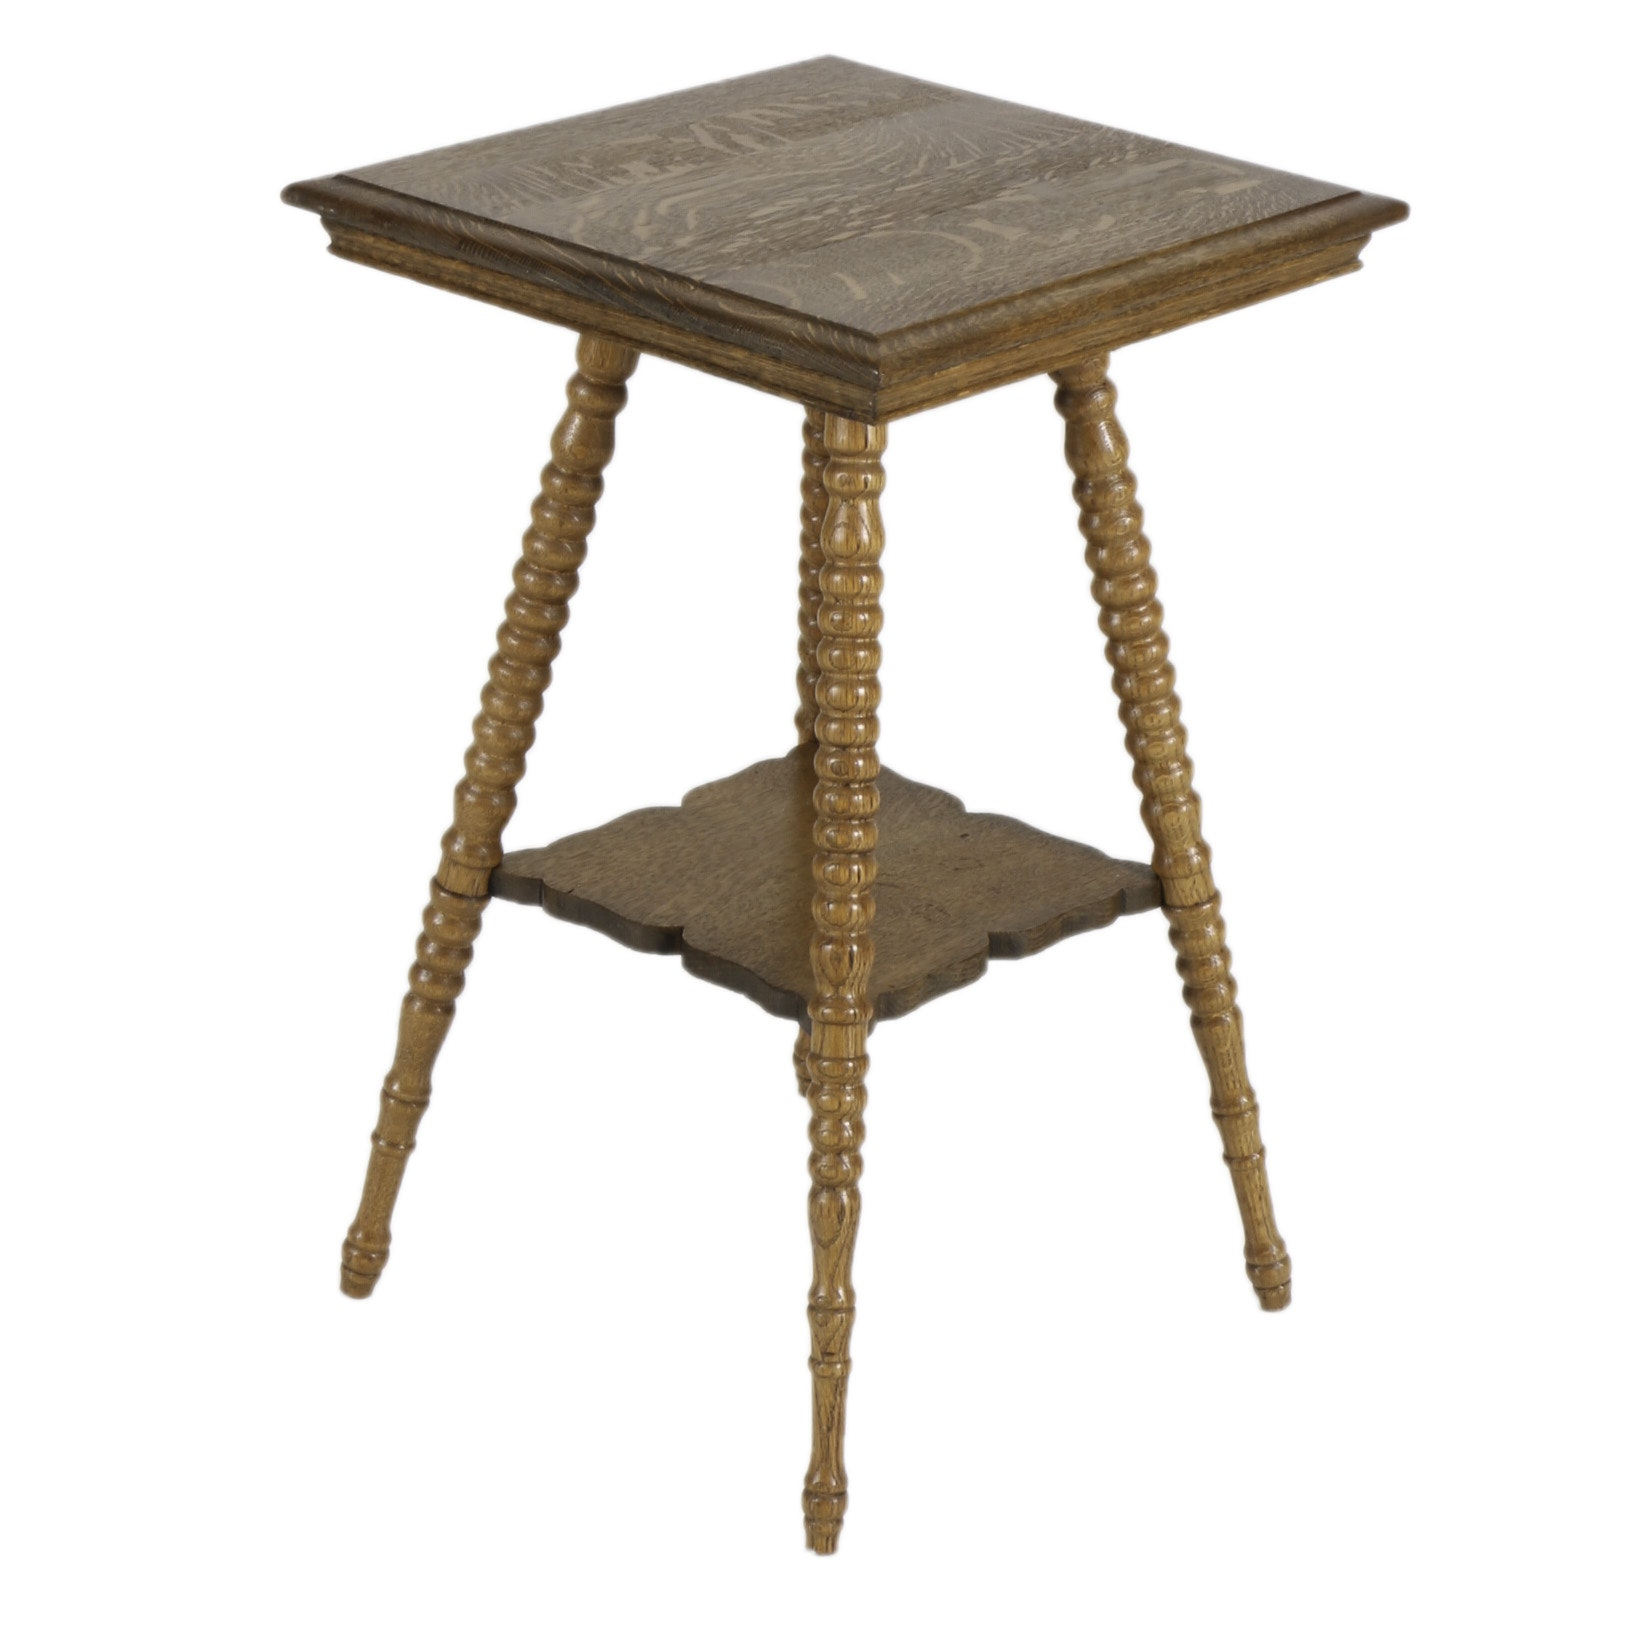 Spindle Leg Table #30 - Spindle Leg Oak Accent Table ...